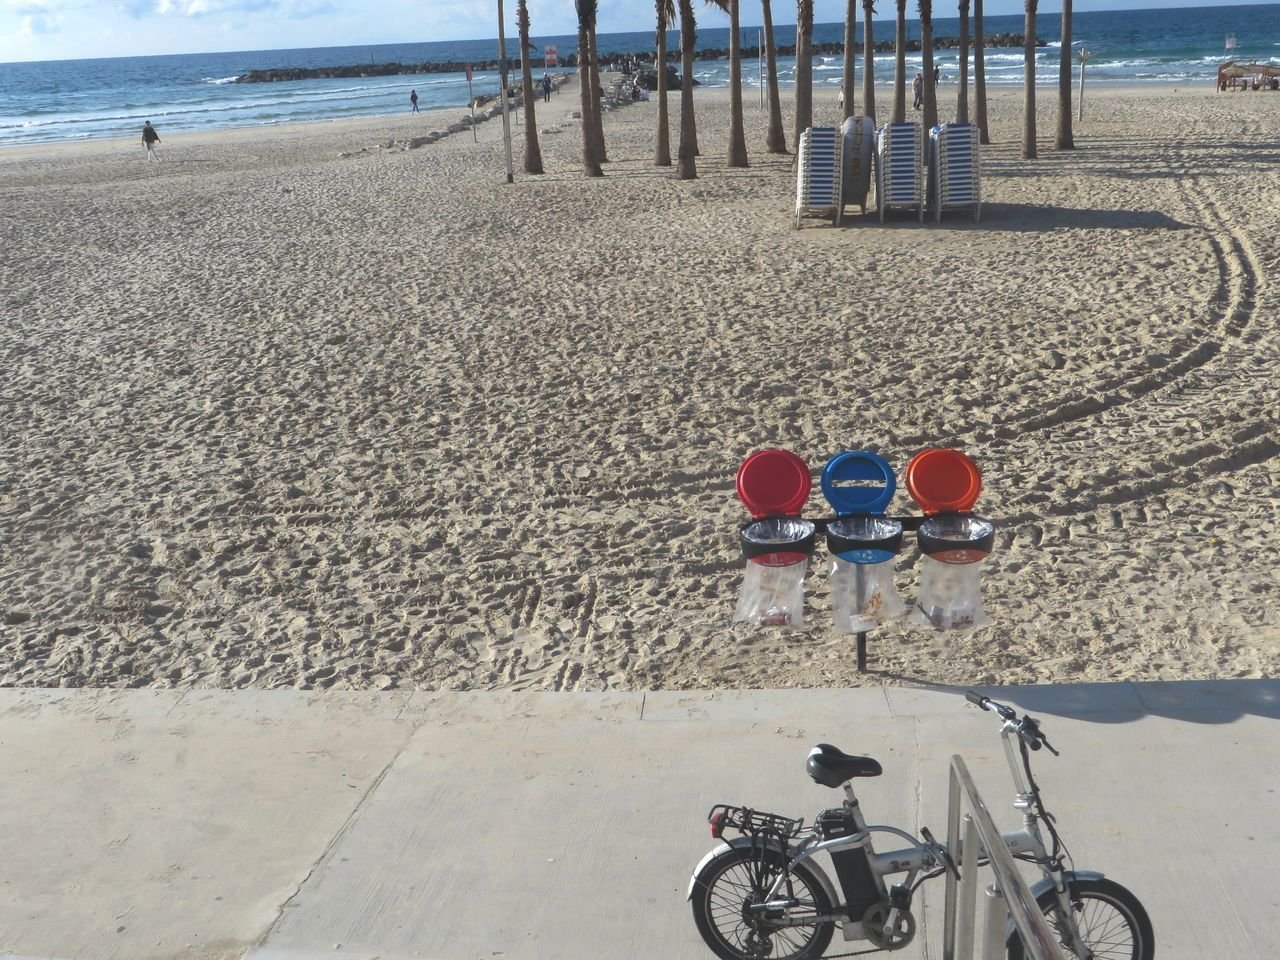 beach, sand, bicycle, day, outdoors, transportation, mode of transport, sea, water, nature, no people, sky